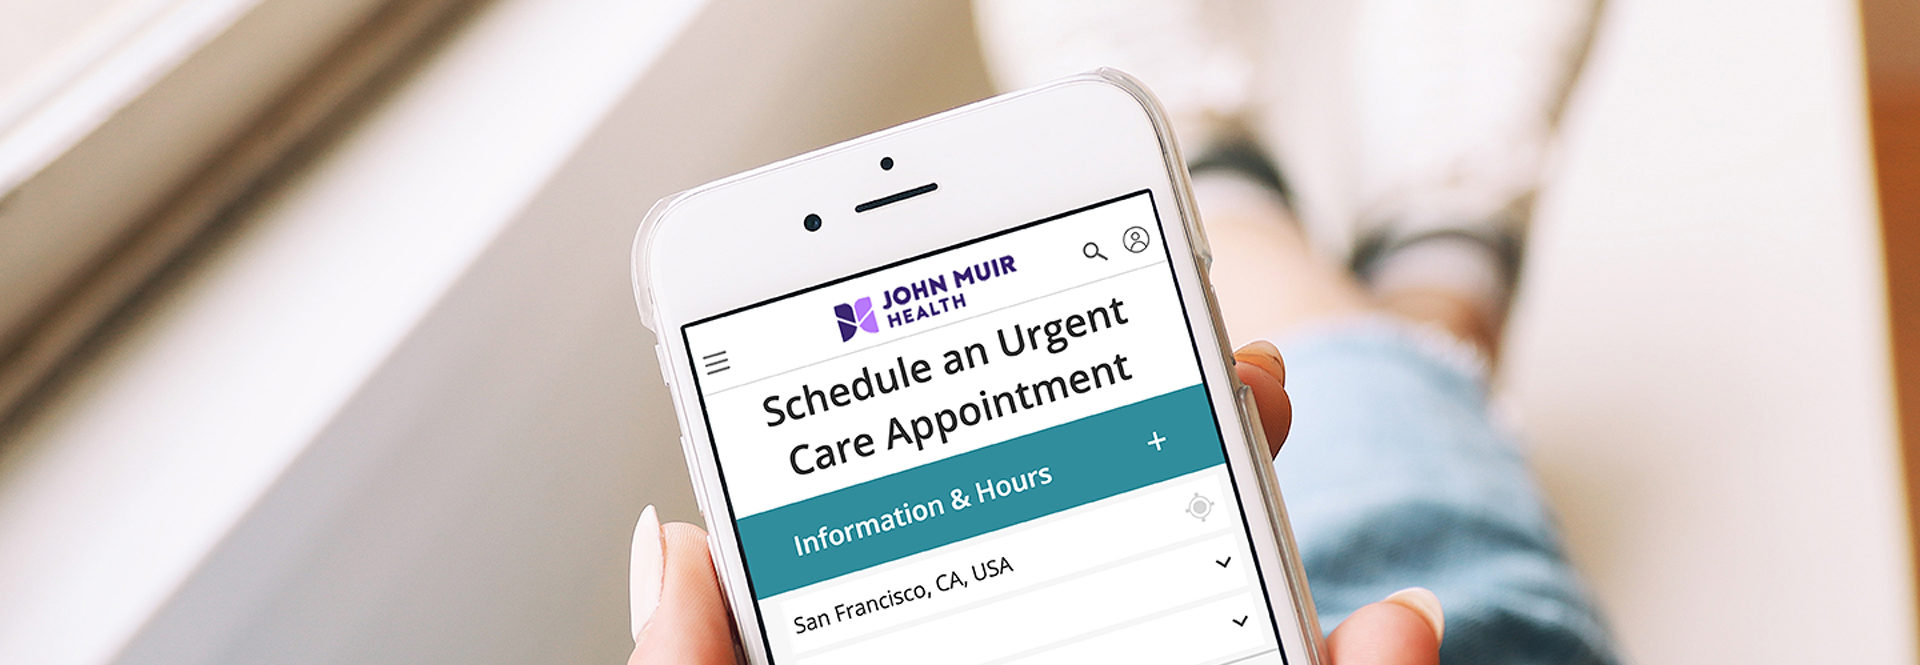 iPhone user scheduling urgent appointment on John Muir health app